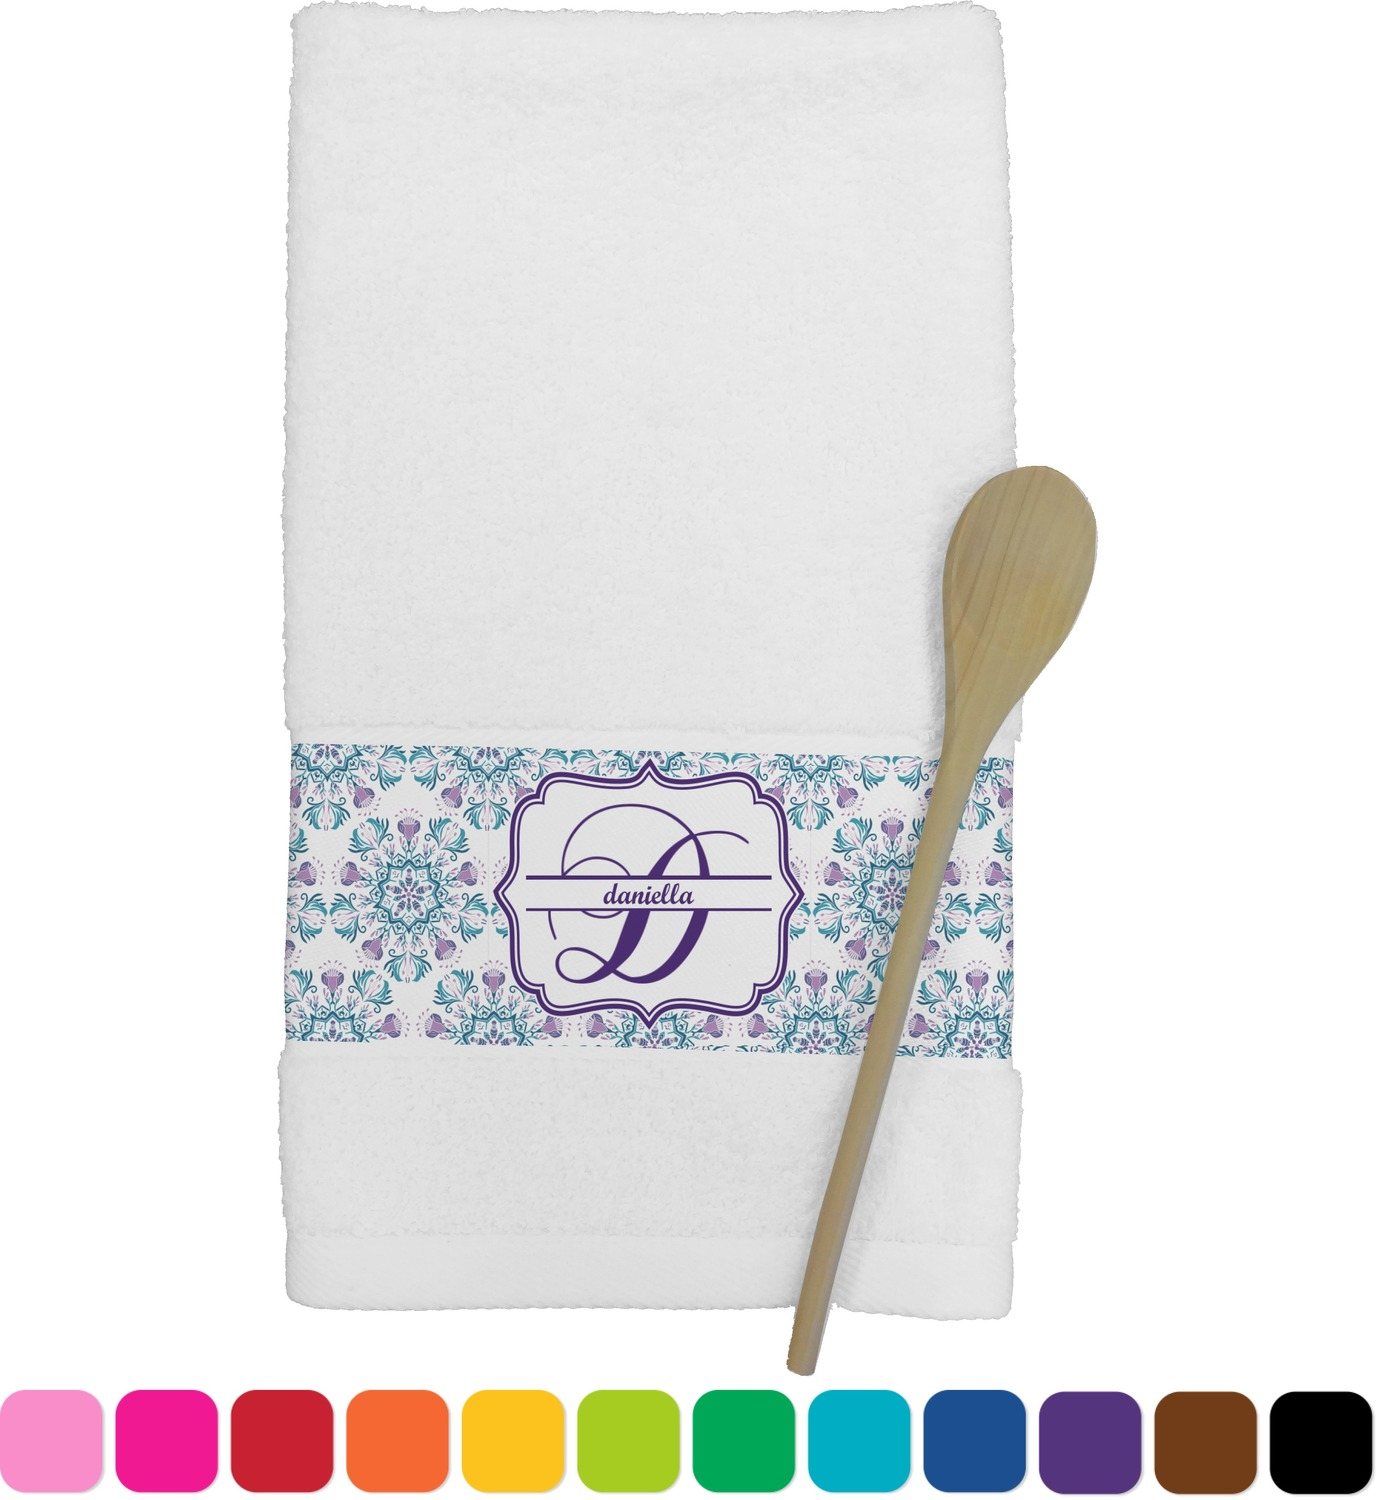 personalized kitchen towels top rated appliances mandala floral towel youcustomizeit